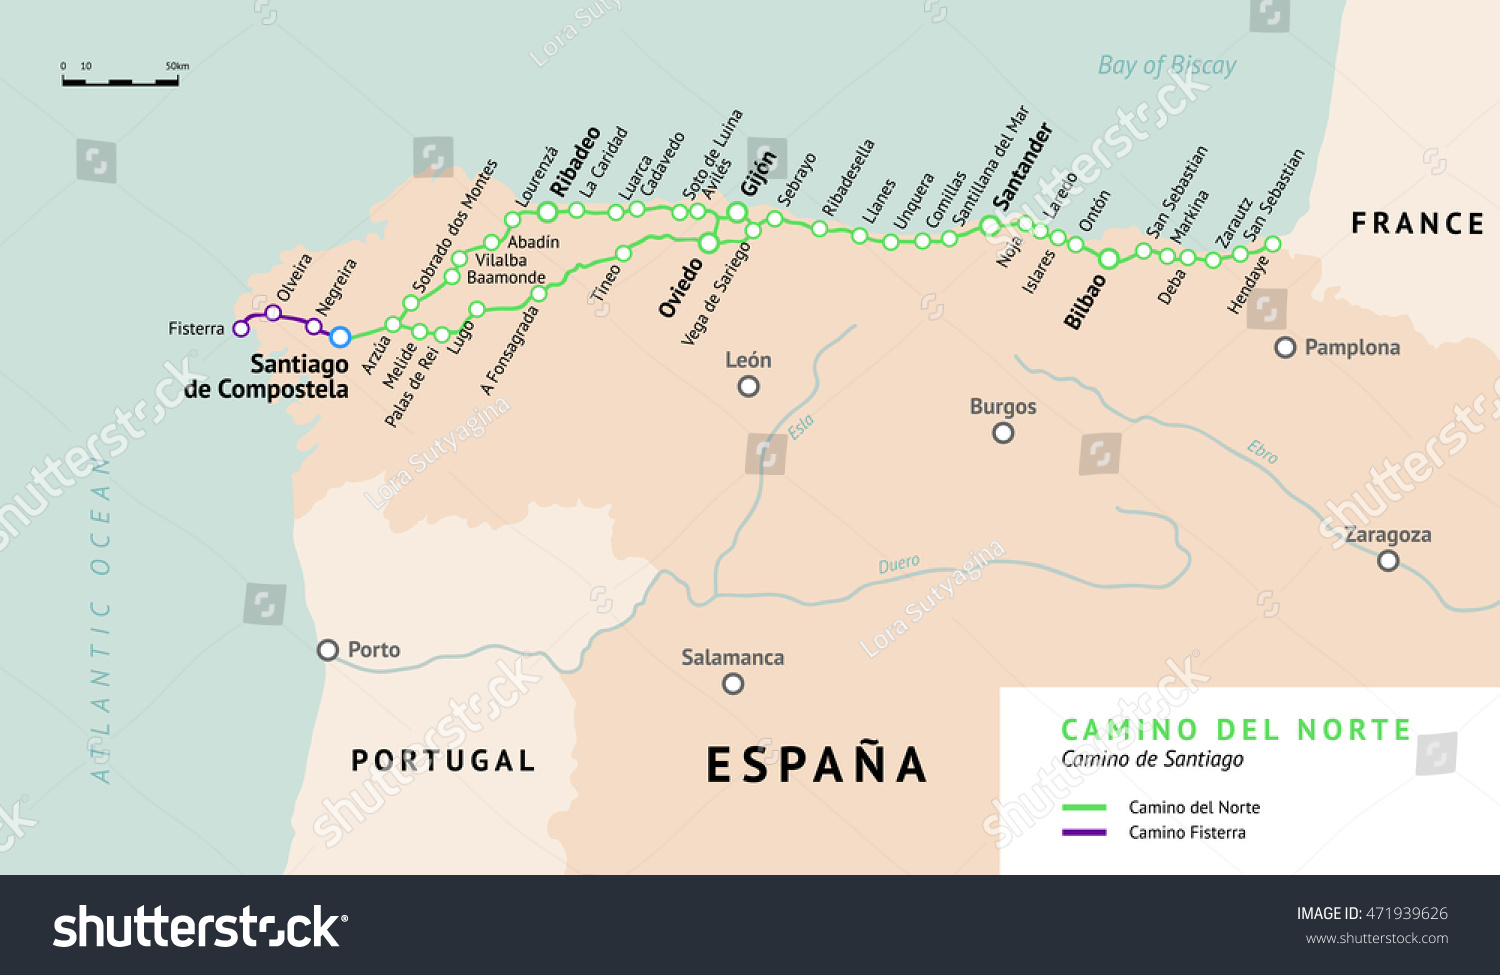 Camino De B Camino Del Norte Map Camino De Stock Vector Royalty Free